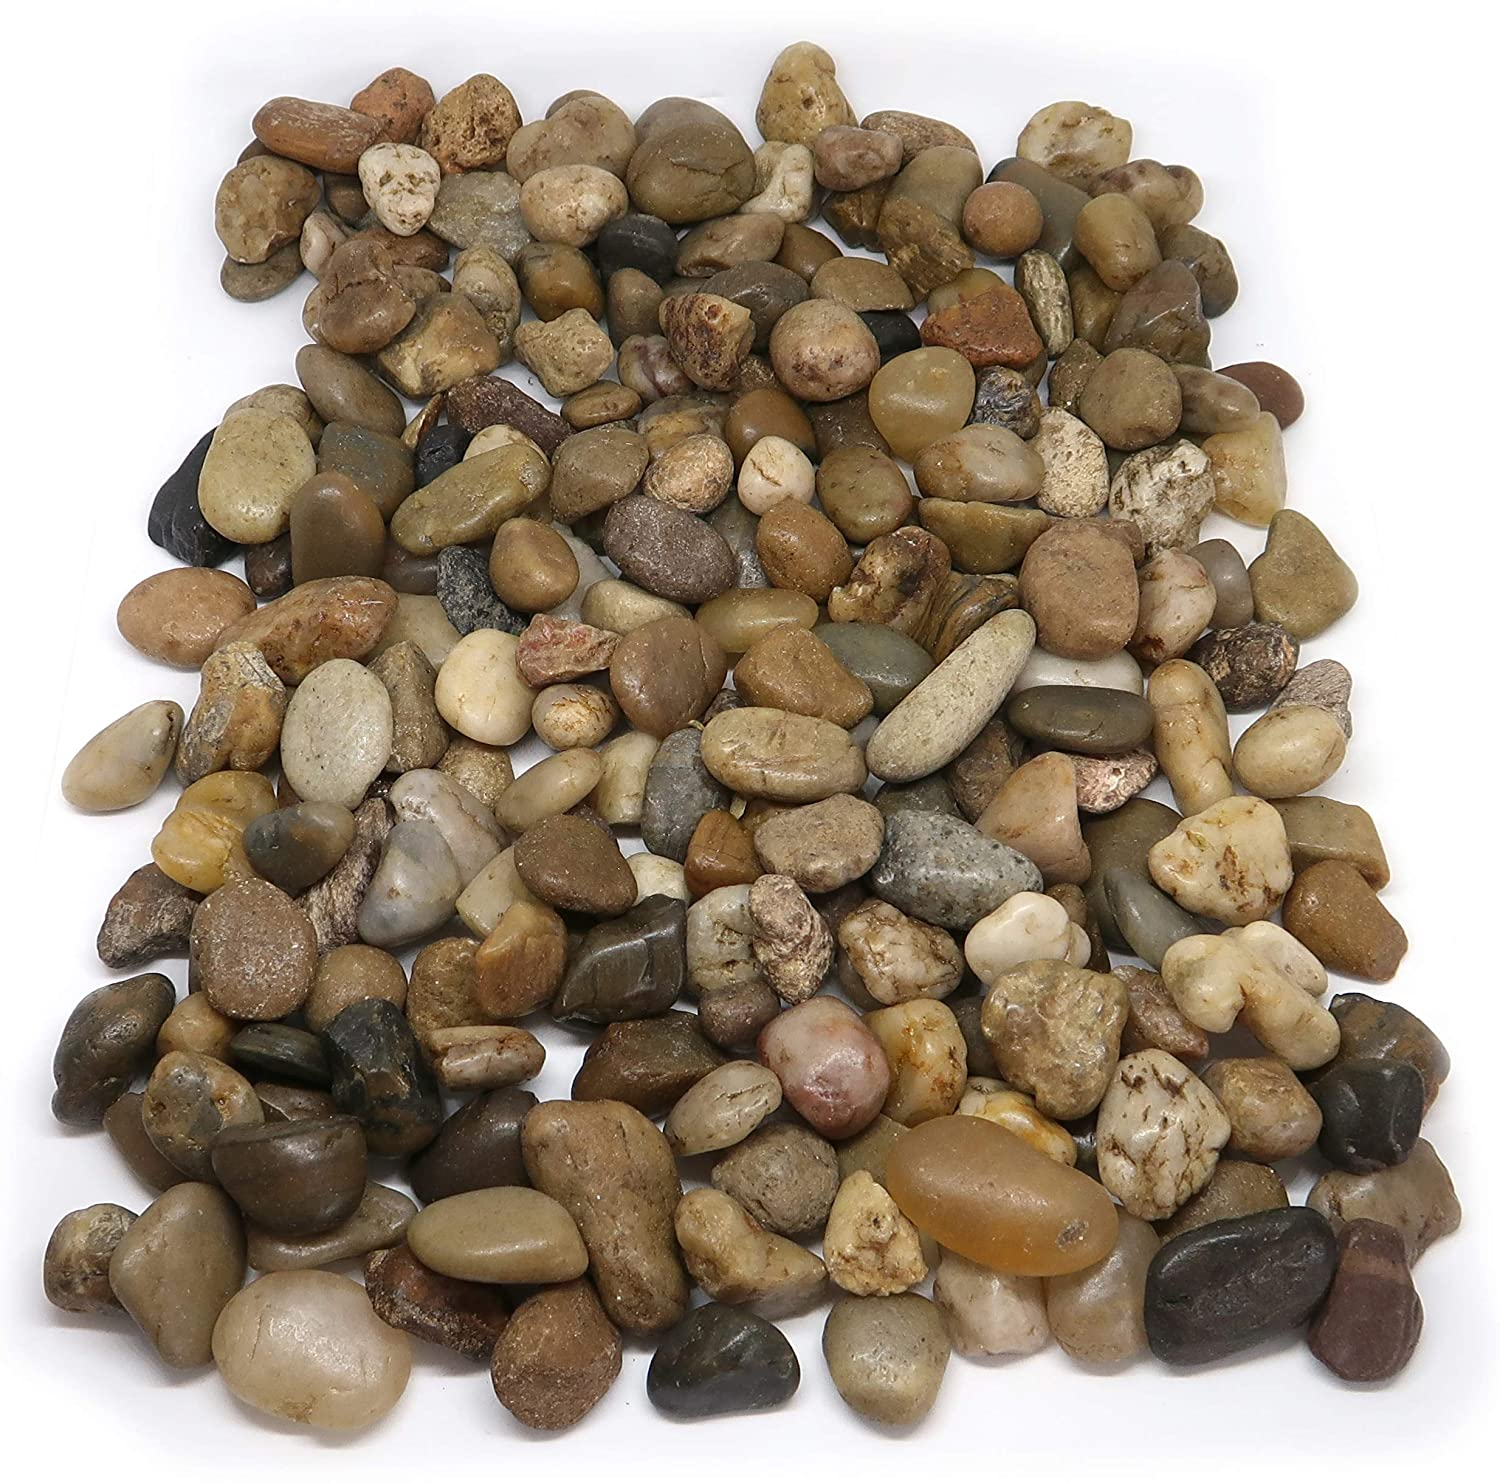 1Buy UK 1kg New Assorted Browns Natural Stones Pebbles Craft Table Decoration Pot Vase Garden Weddings Rocks Aquarium